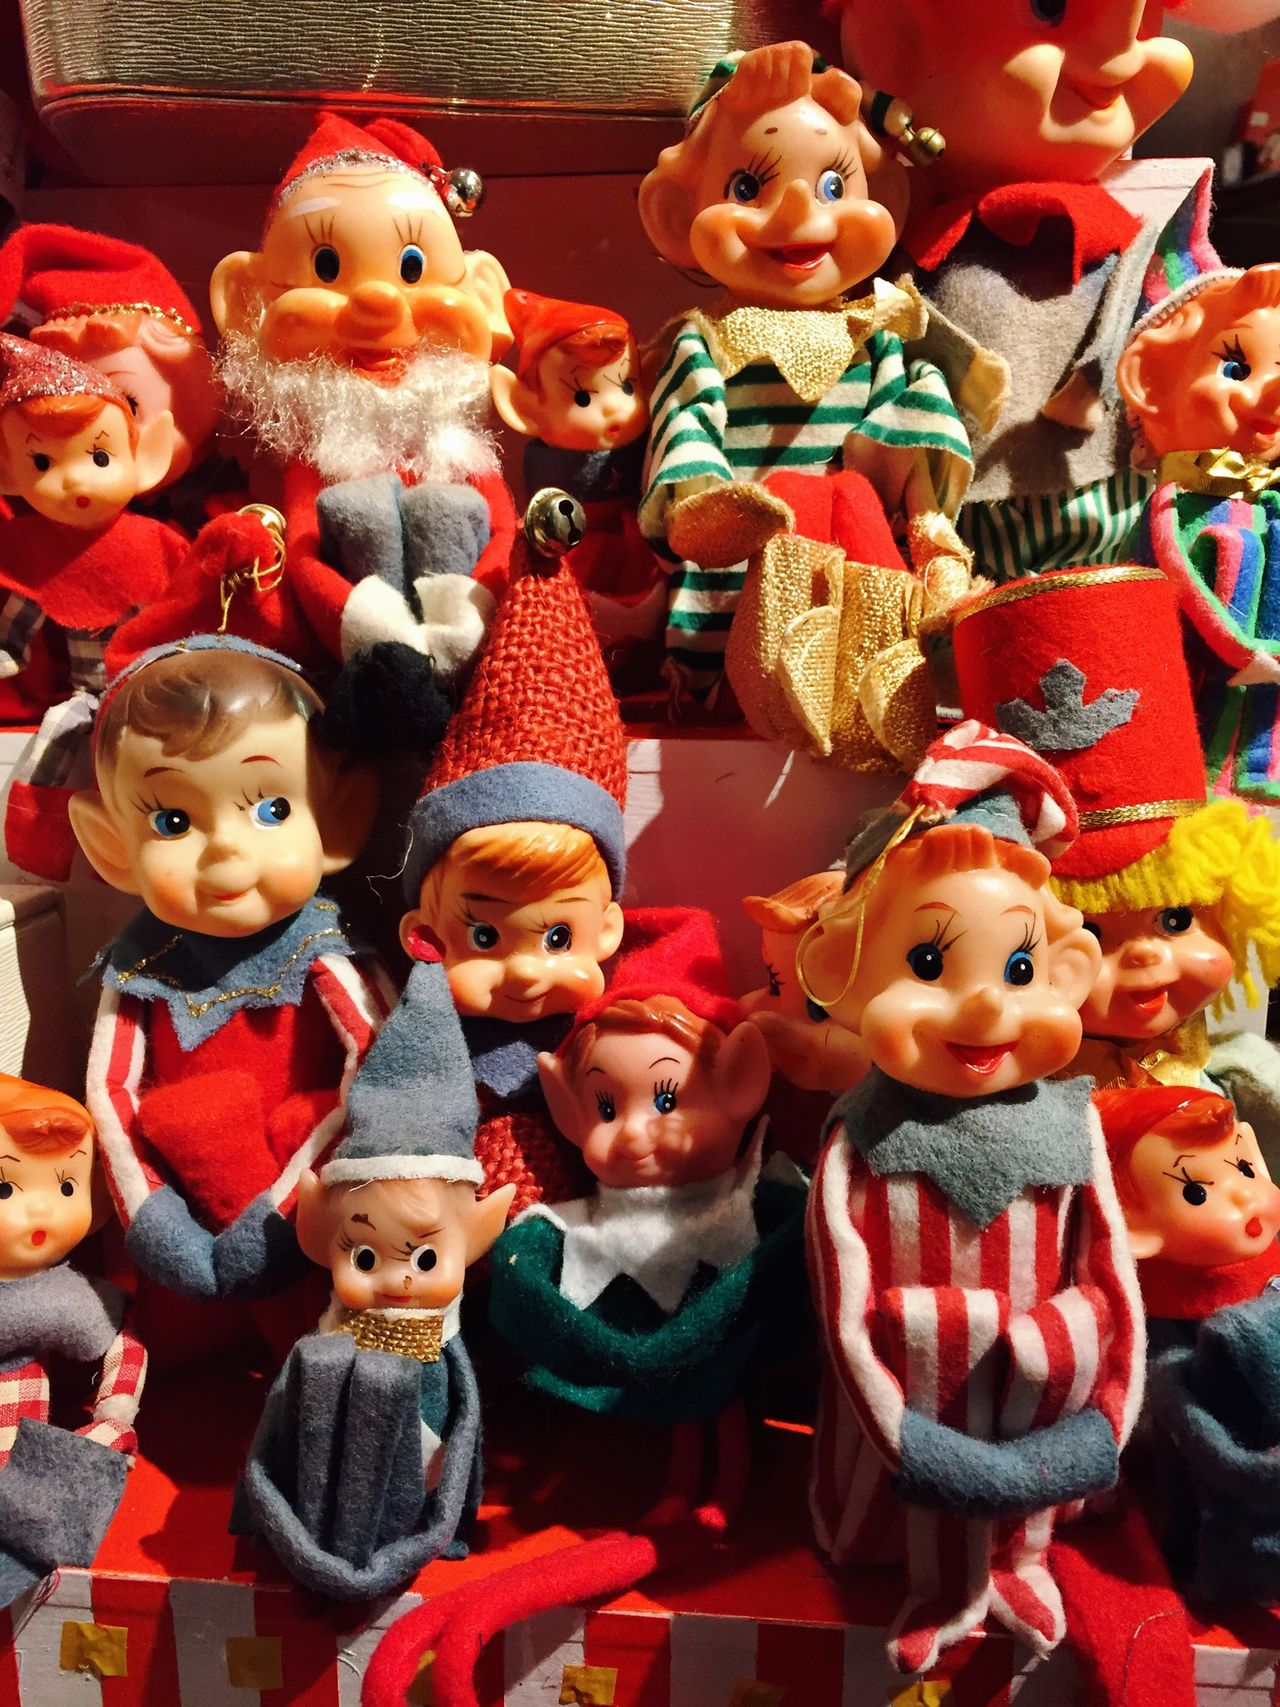 Toys Christmas Decorations Christmas Holidays Red Children Vintage Elves Group